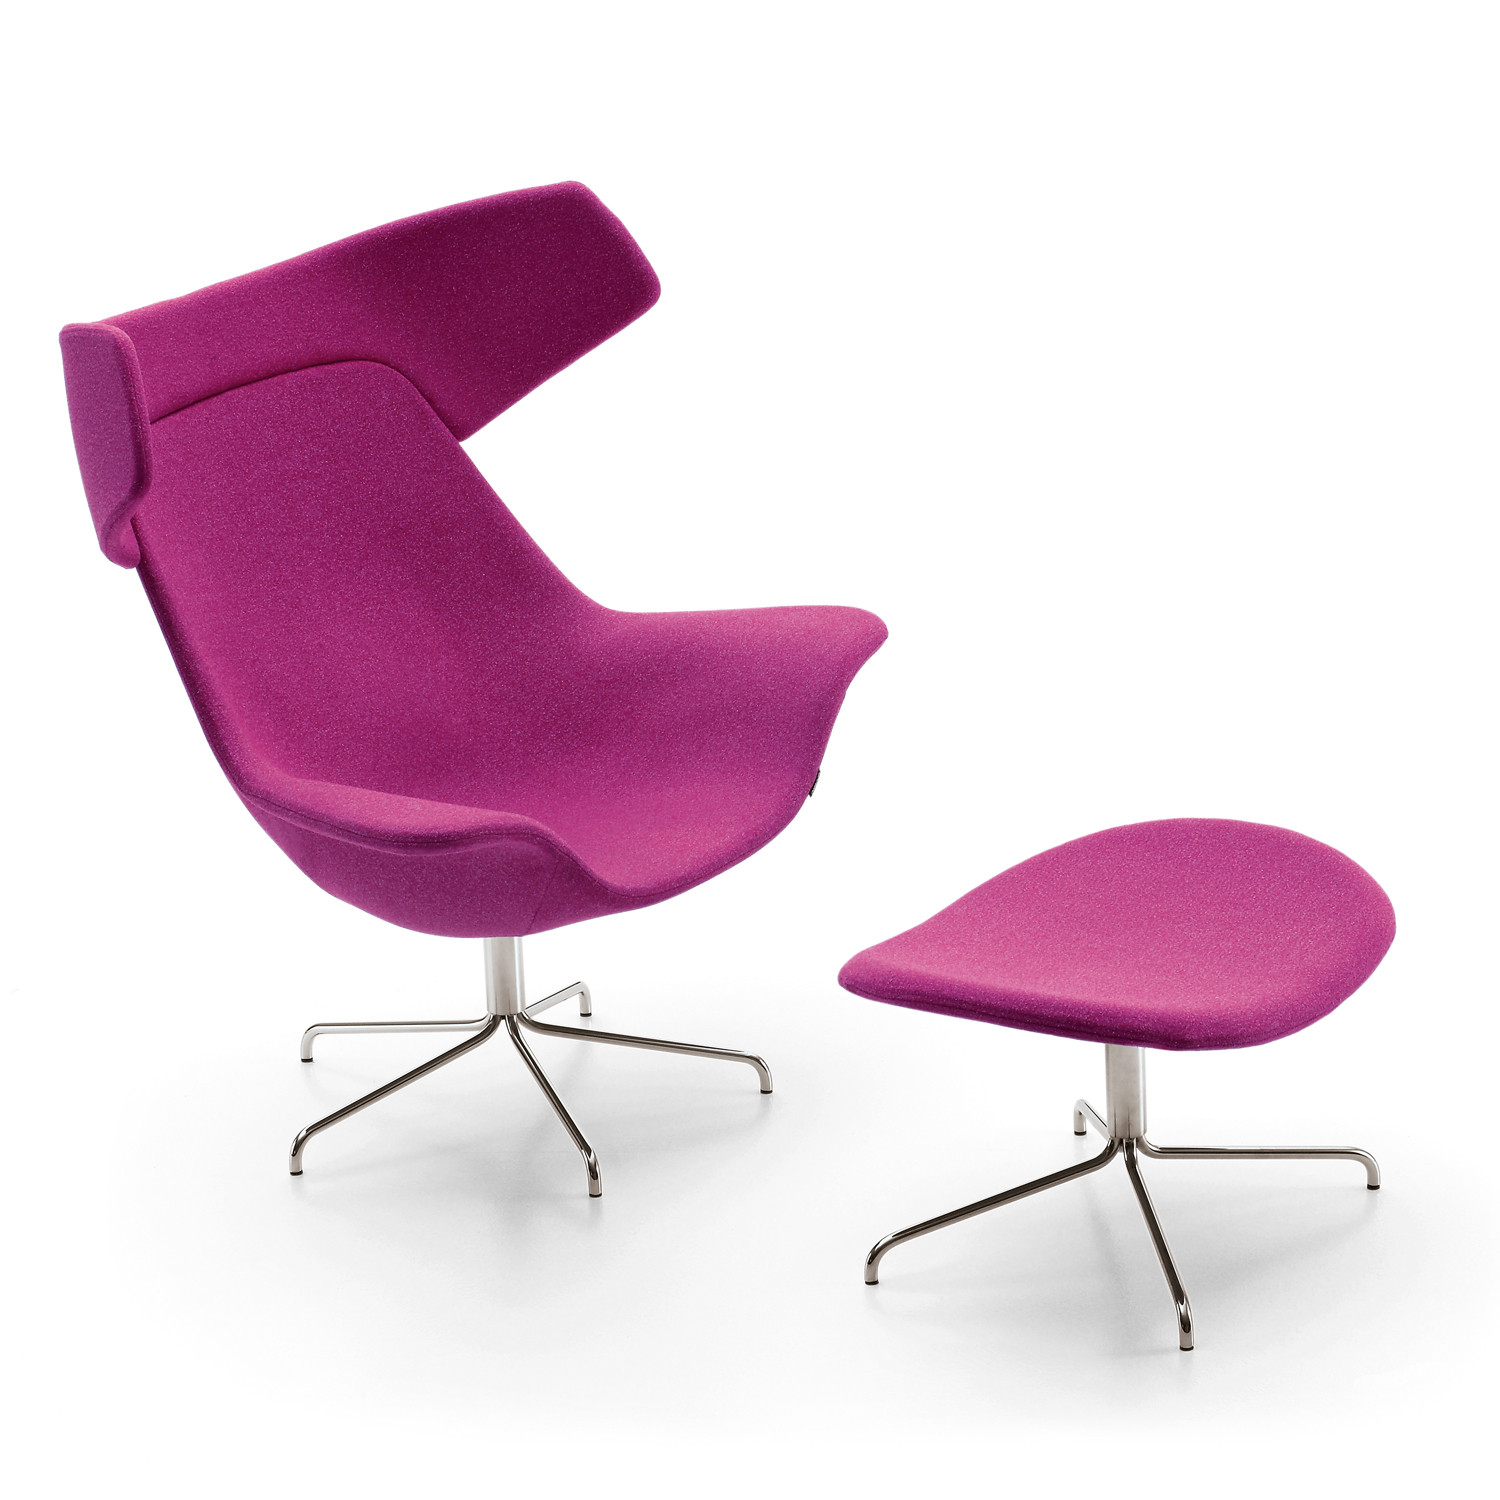 Oyster High Chair & Footstool